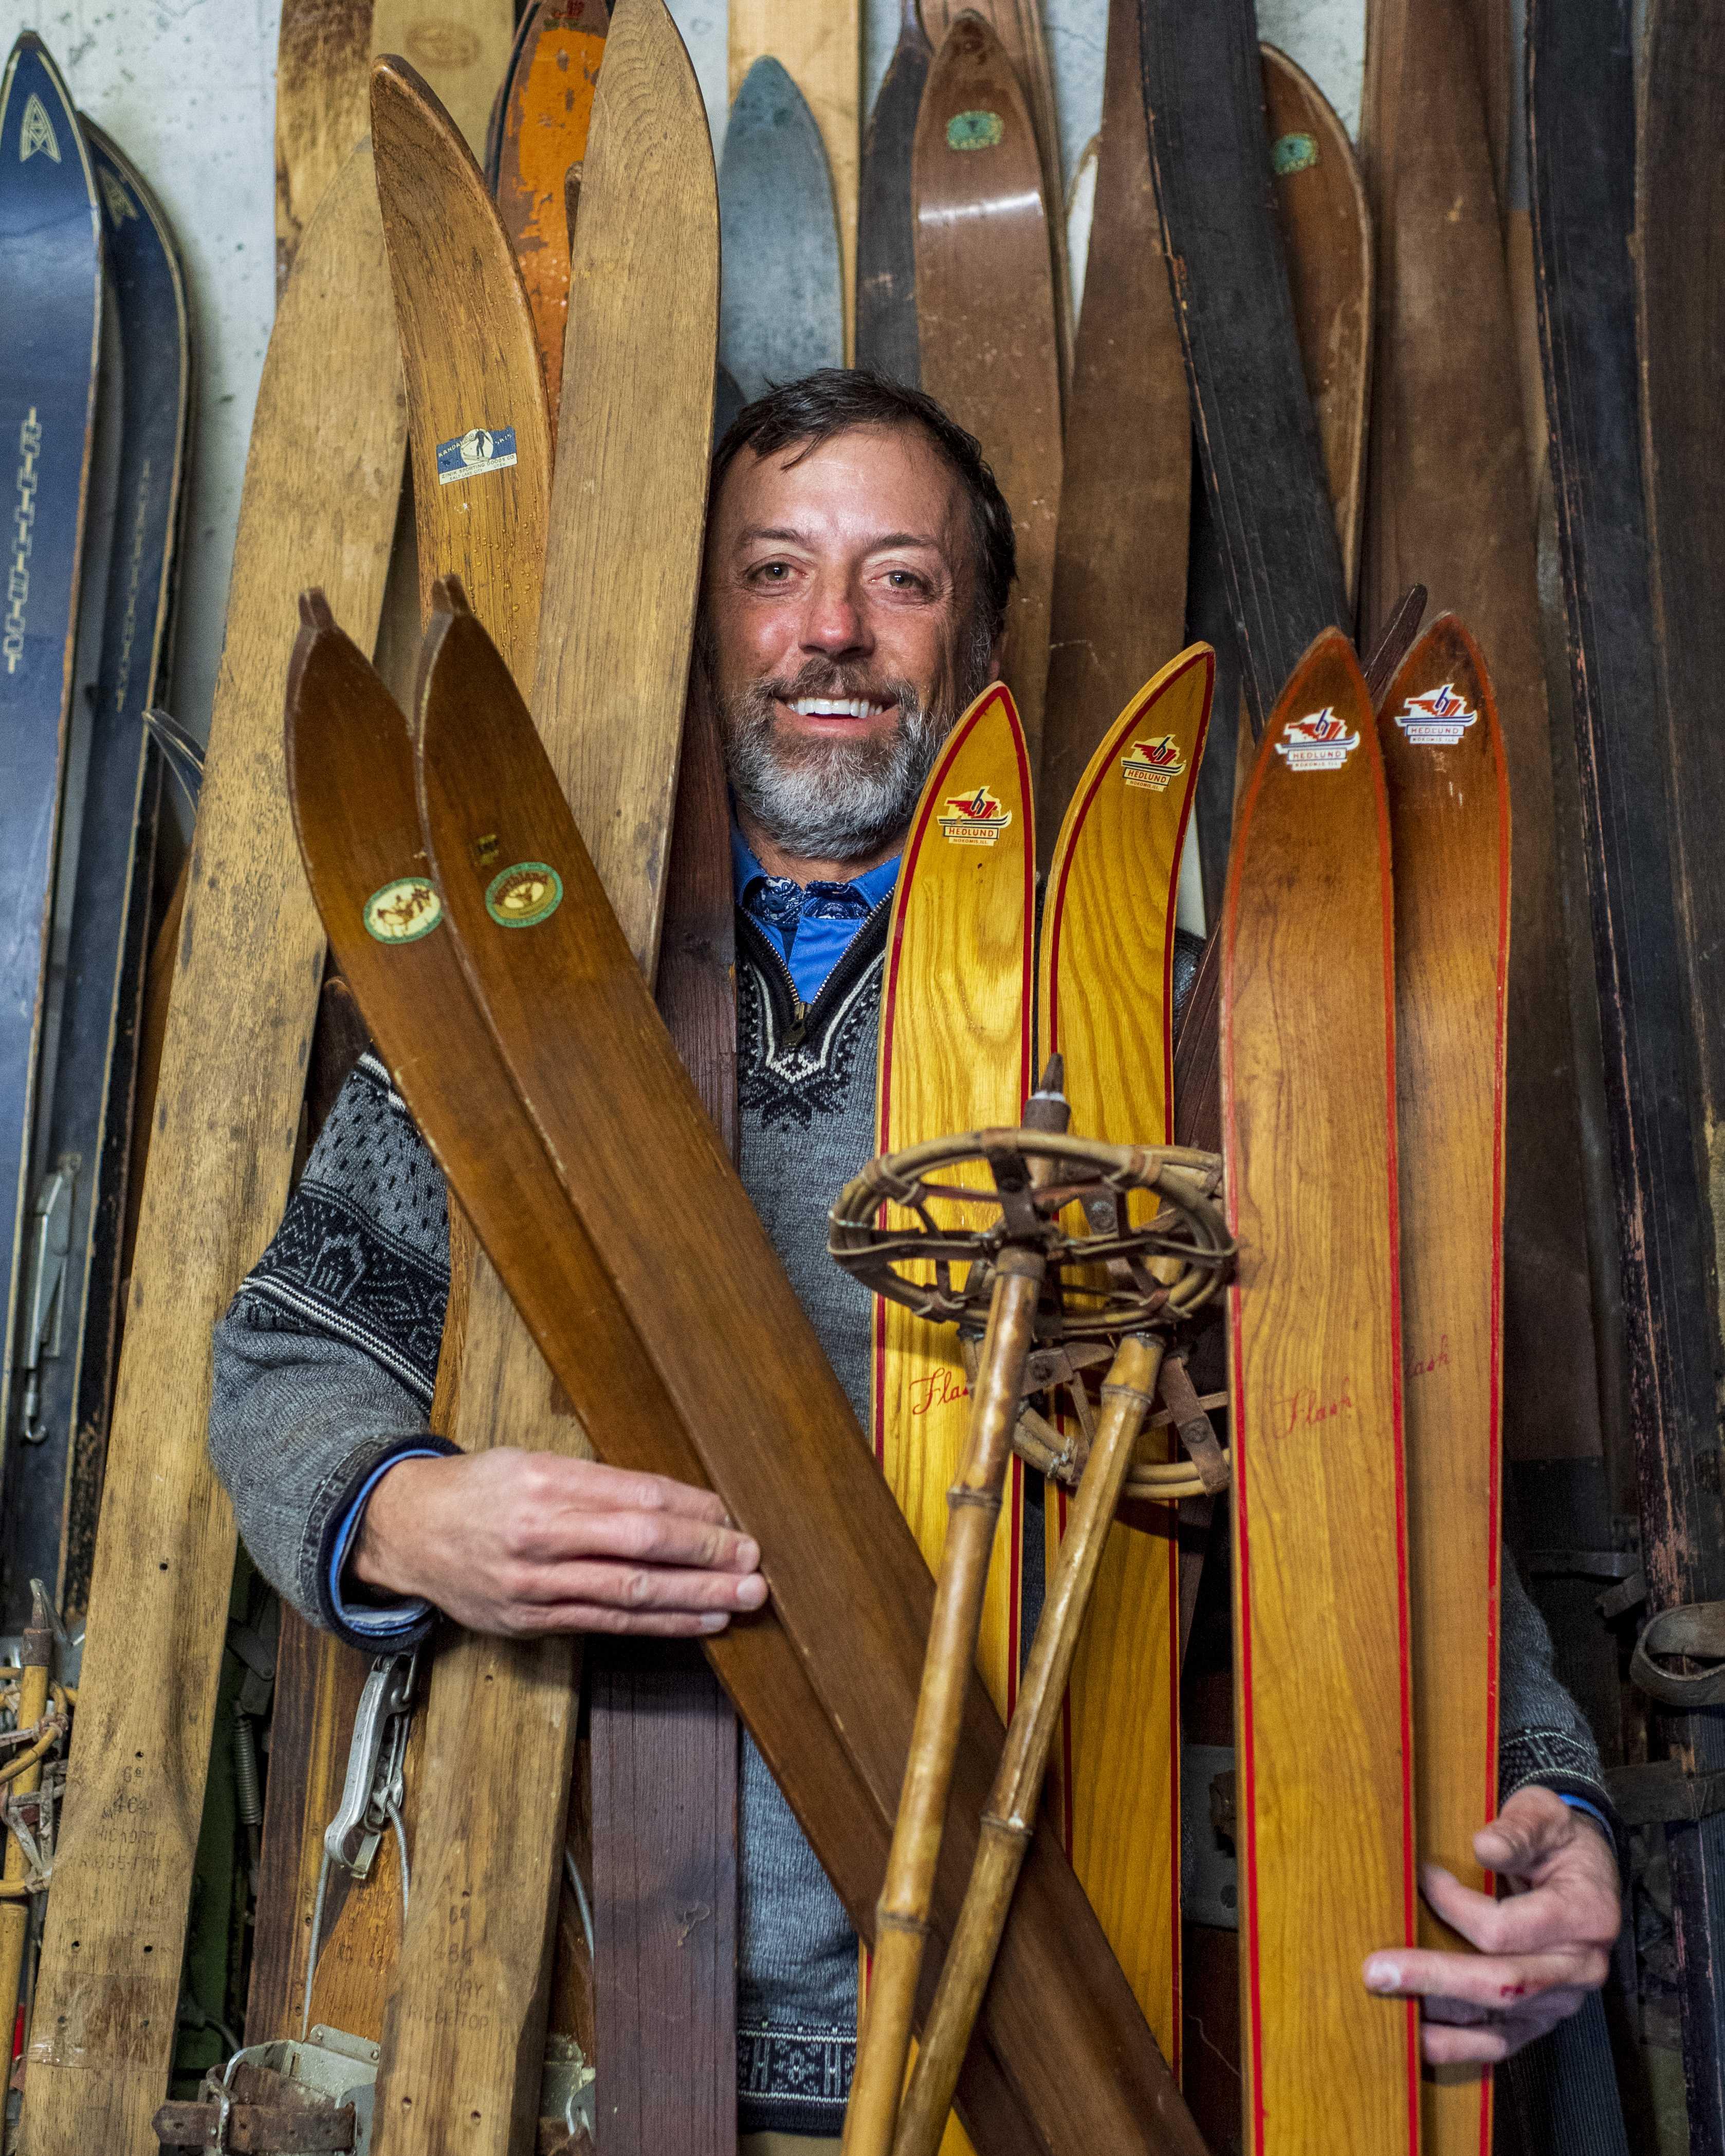 Mark Miller's antique ski and snowshoe collection in Park City, UT on Sunday, Feb. 24, 2019. (Photo by Kiffer Creveling)